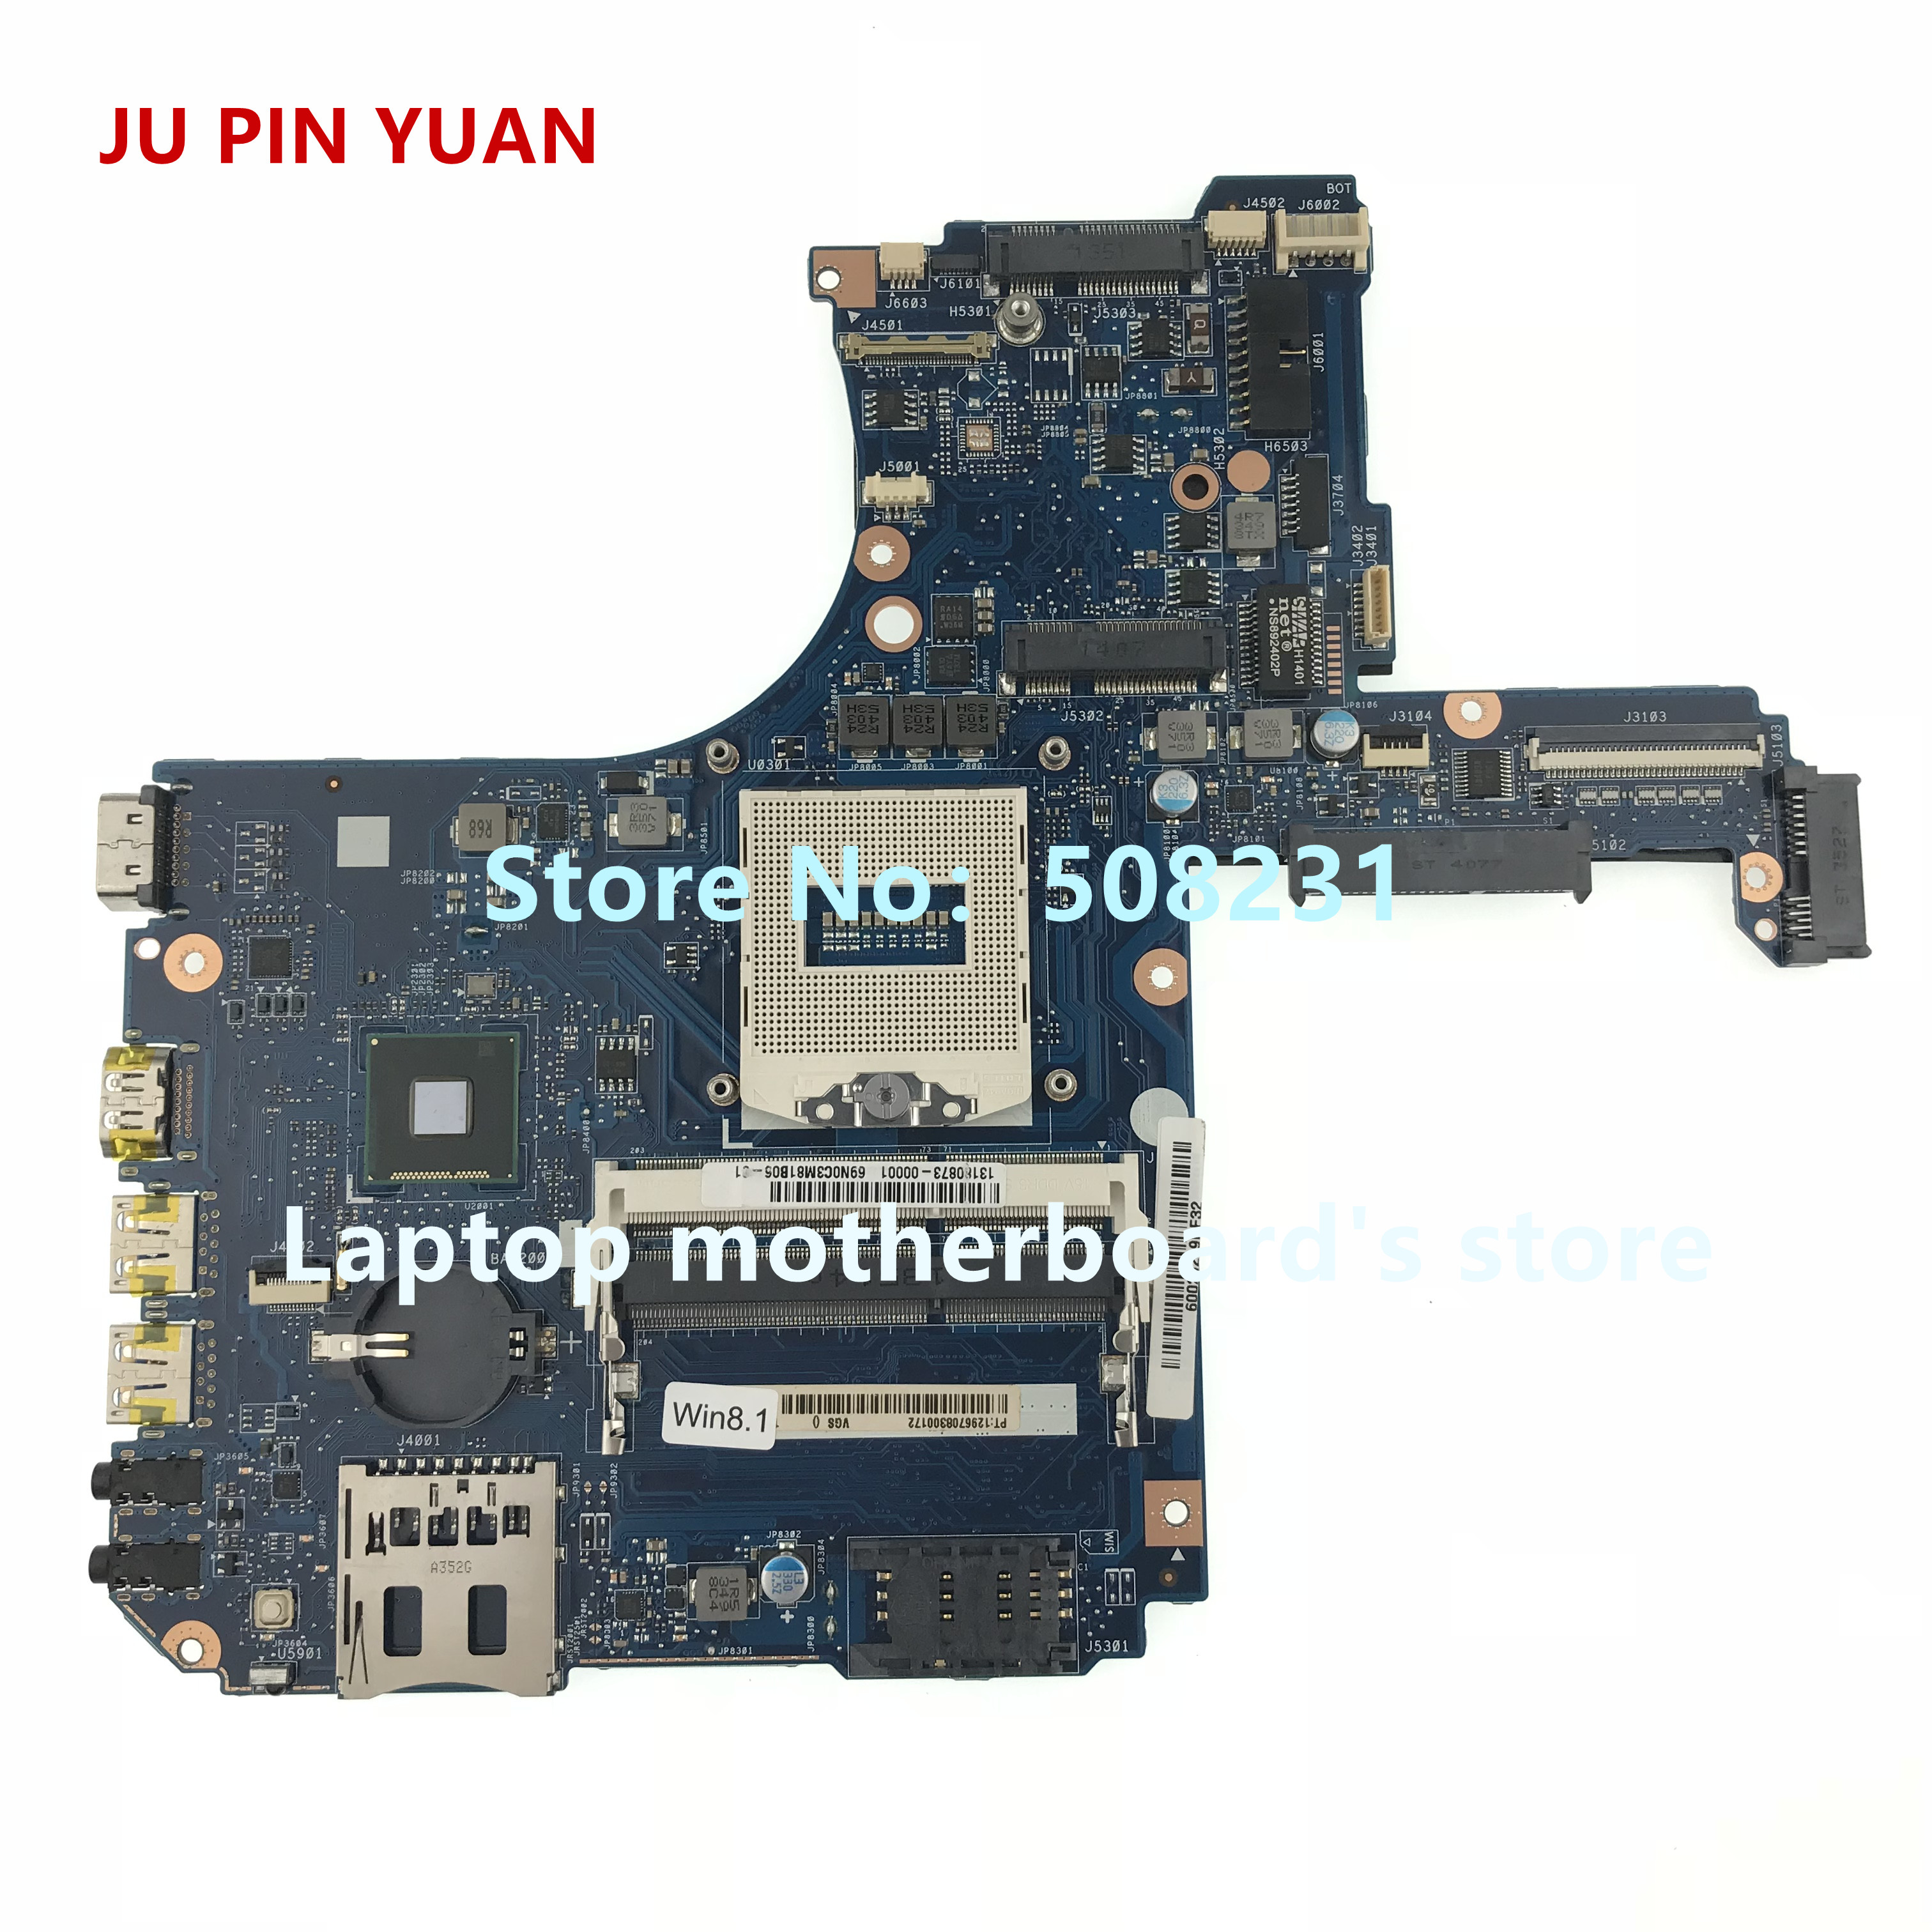 JU PIN YUAN H000055990 Mainboard For Toshiba Satellite P50-A P50T-A P55-A Laptop Motherboard Socket PGA 947 HM86 DDR3L